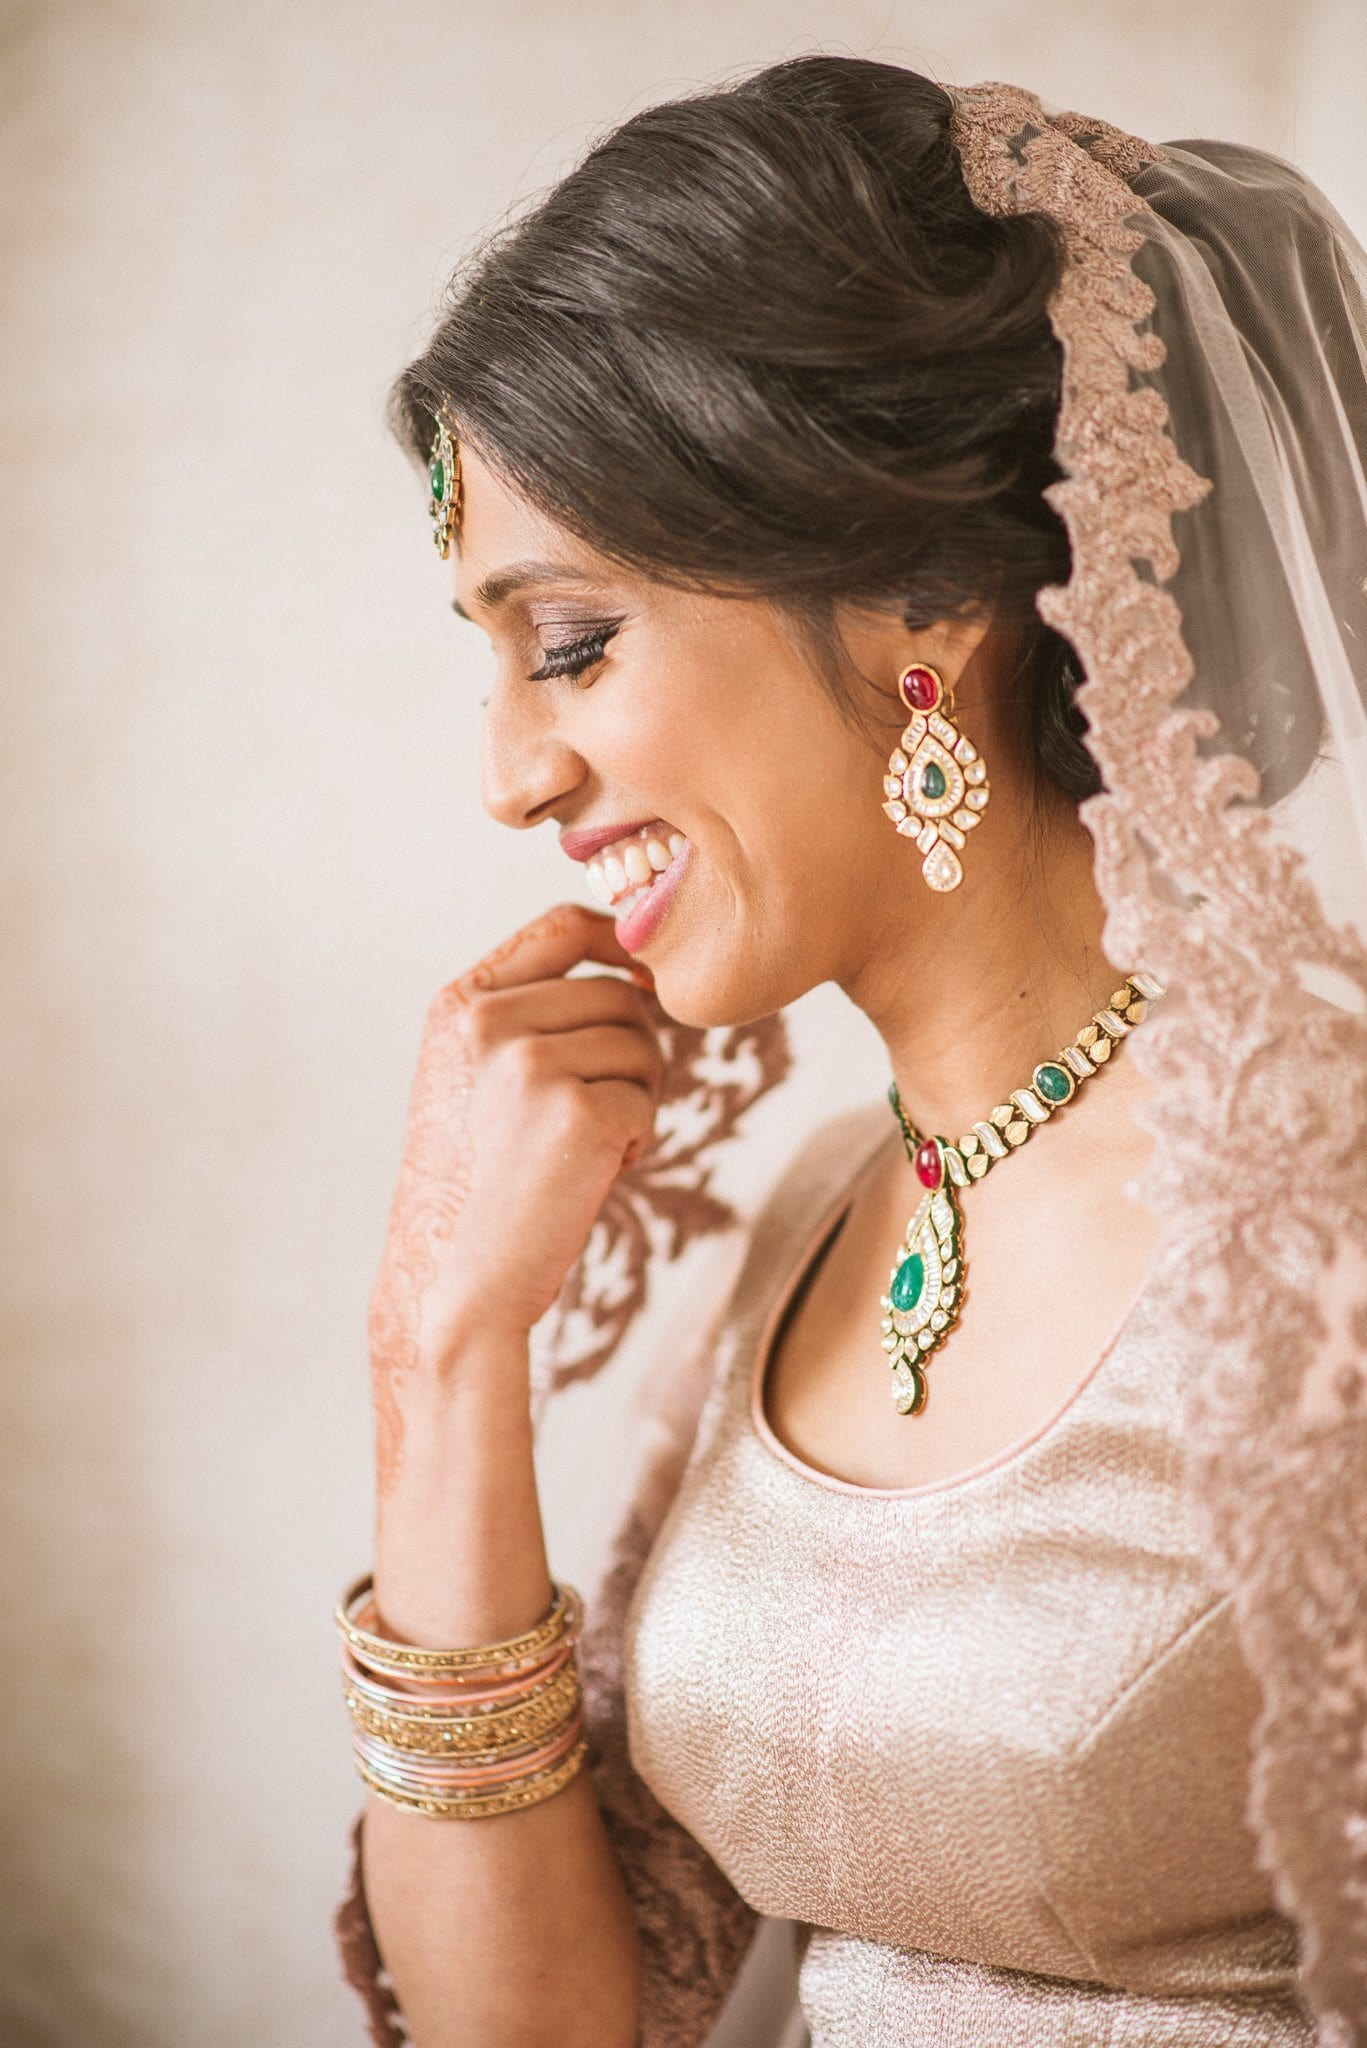 A portrait of Sorayya before her ceremony. This image was selected by Huffington Post as one of their most stunning brides.